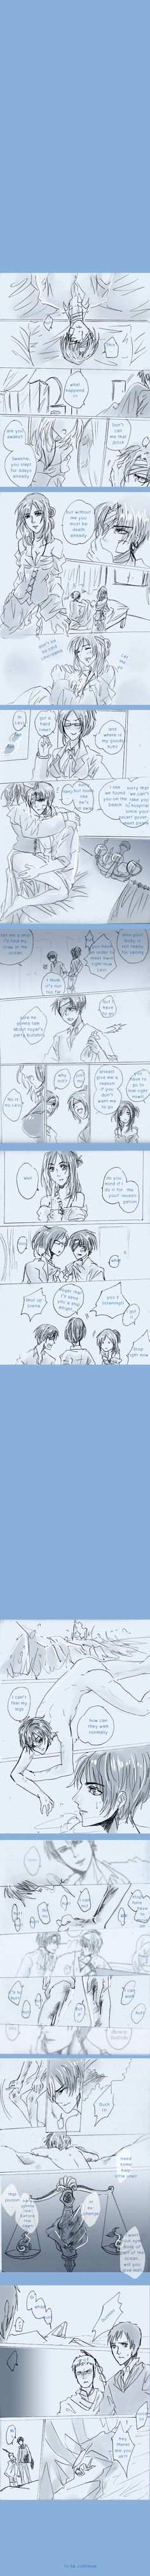 SnK'AU : Pirate!Levi x Mermaid!Eren part15 by illuscarymono.deviantart.com on @DeviantArt